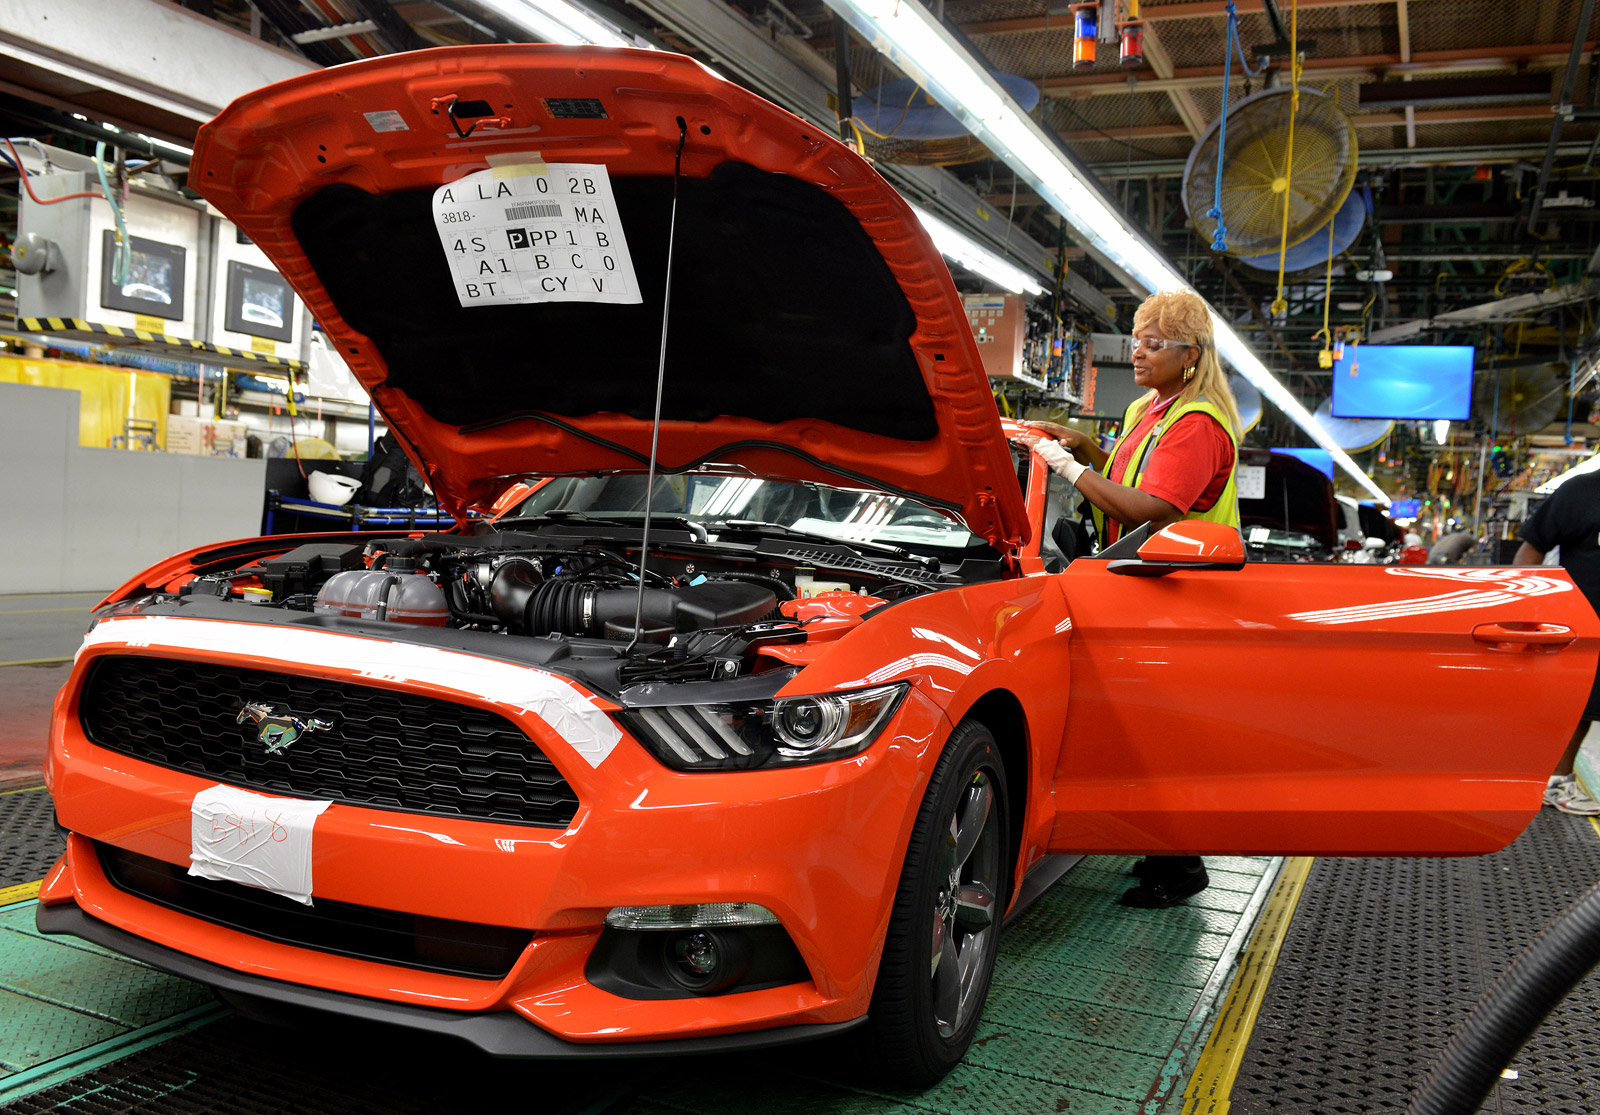 Suzuki Recall, Car Health Tracker, 2015 Mustang Production